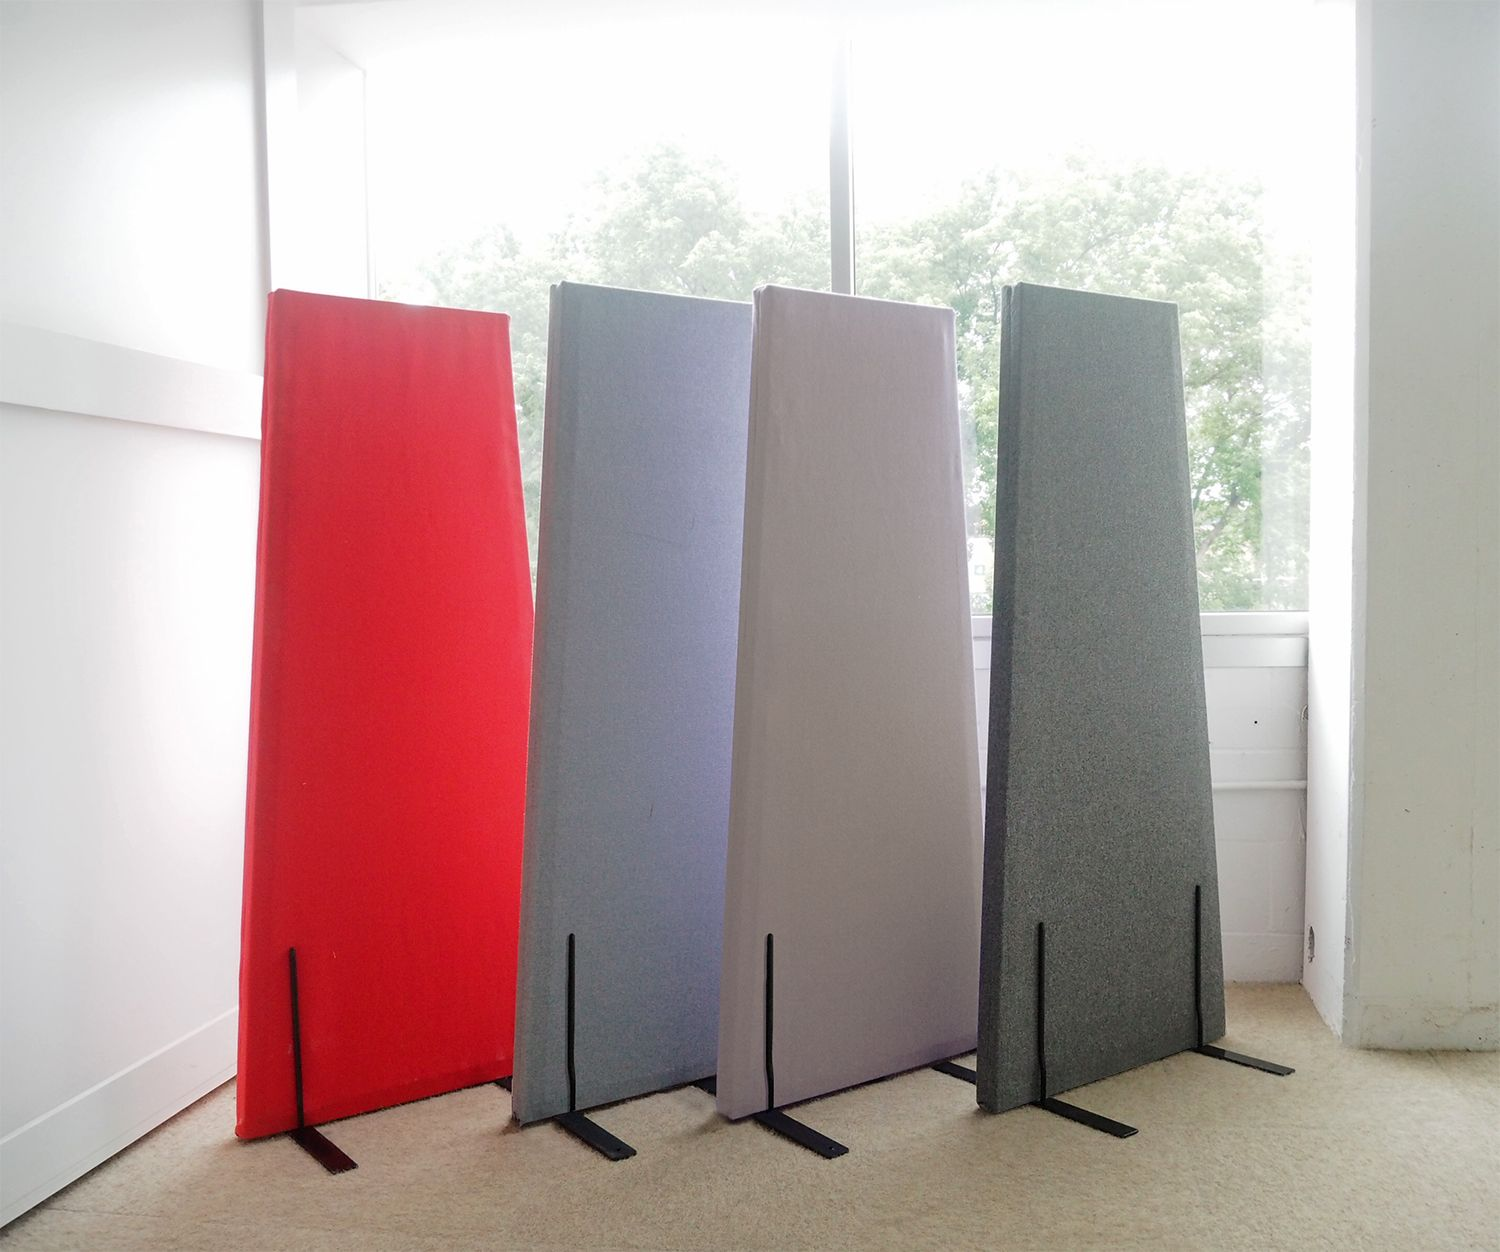 The monolith is a freestanding sound panel that creates an elegant